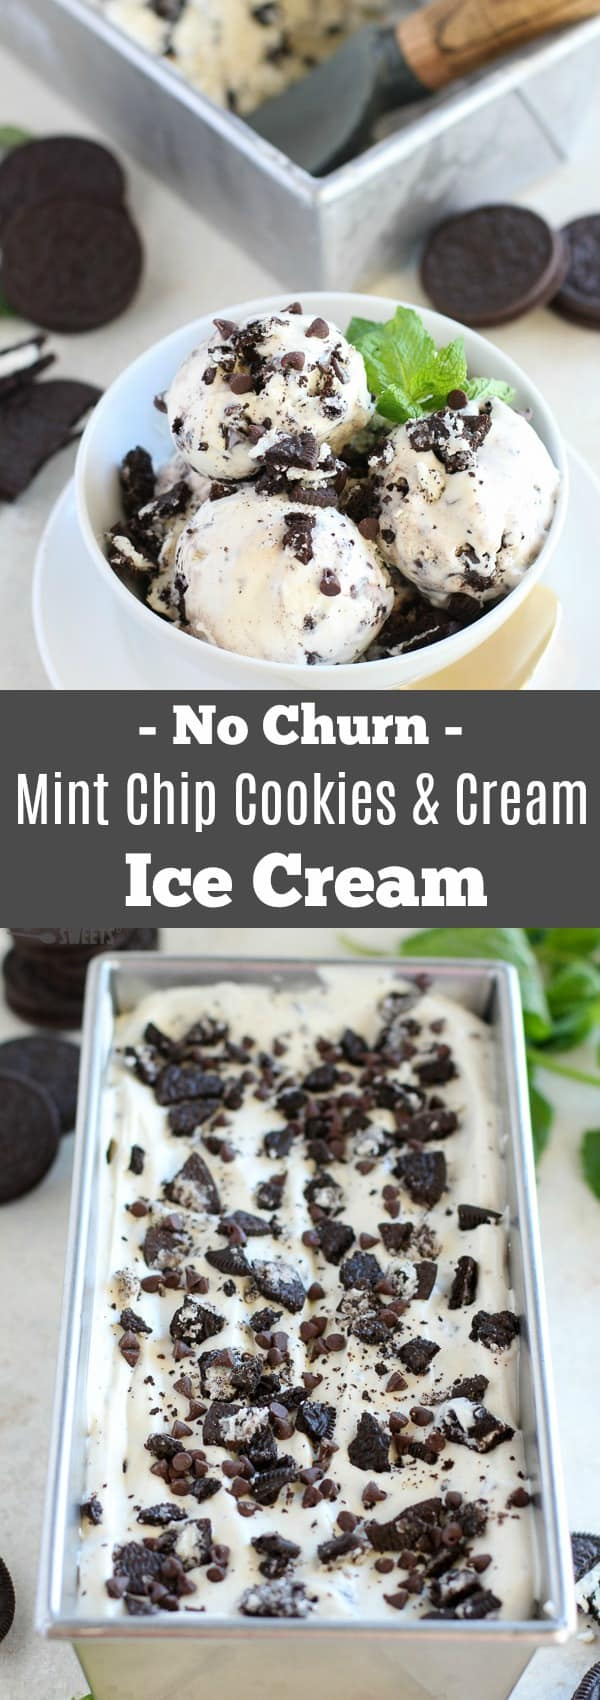 No-Churn Mint Chip Cookies and Cream Ice Cream - Mint Chip combines with Cookies and Cream in the easiest, creamiest ice cream ever!